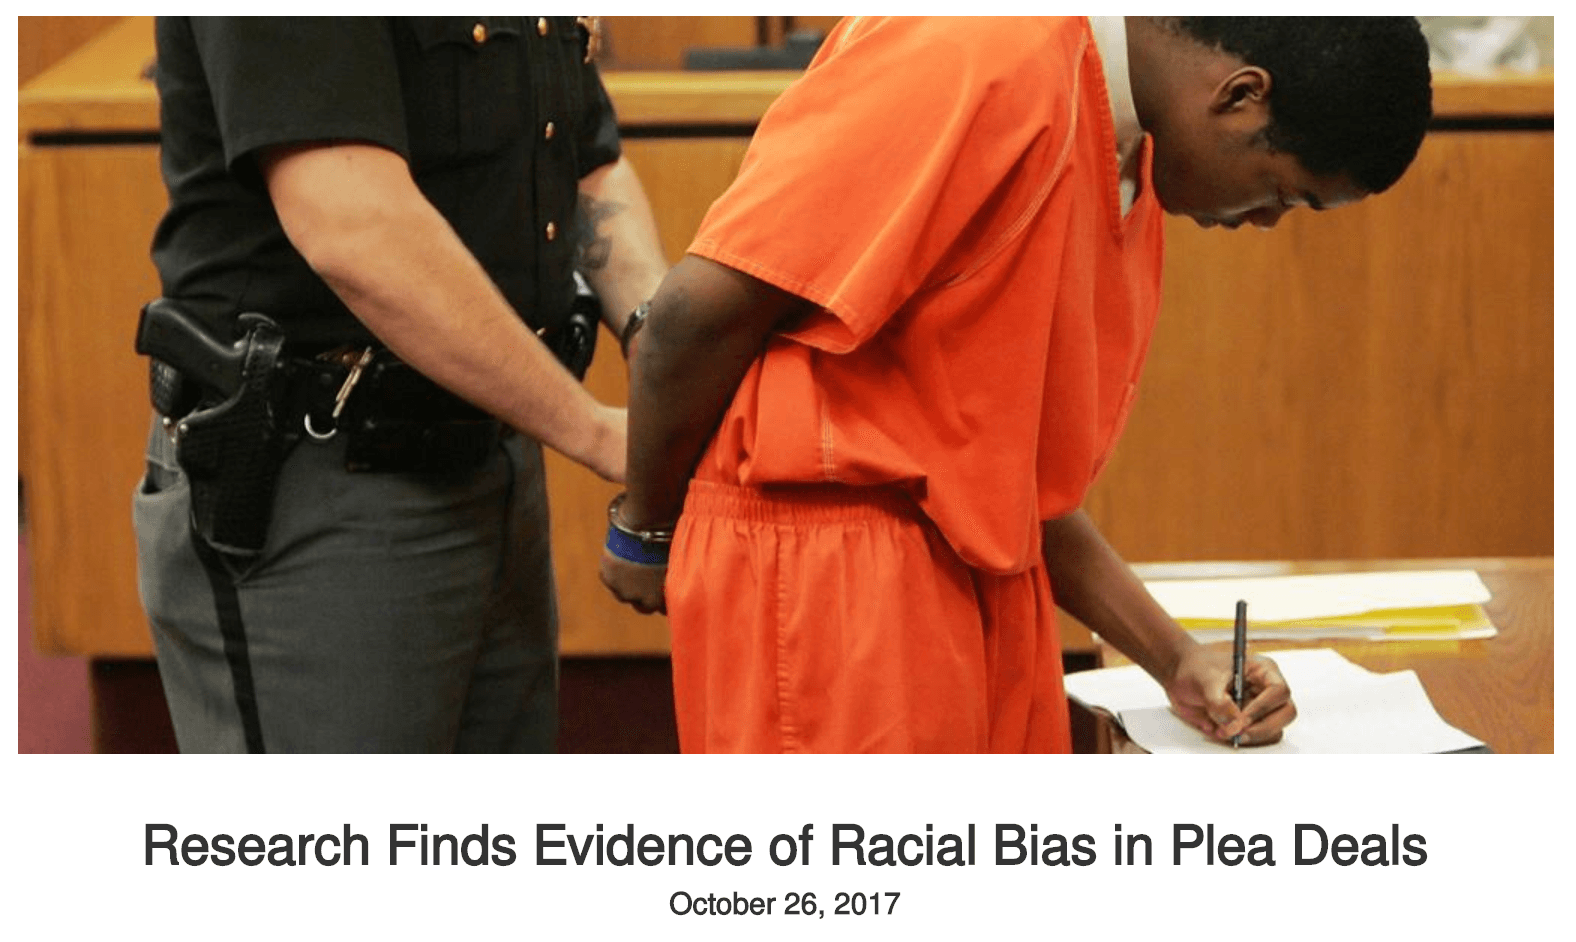 Reprodução/Eji, https://eji.org/news/research-finds-racial-disparities-in-plea-deals